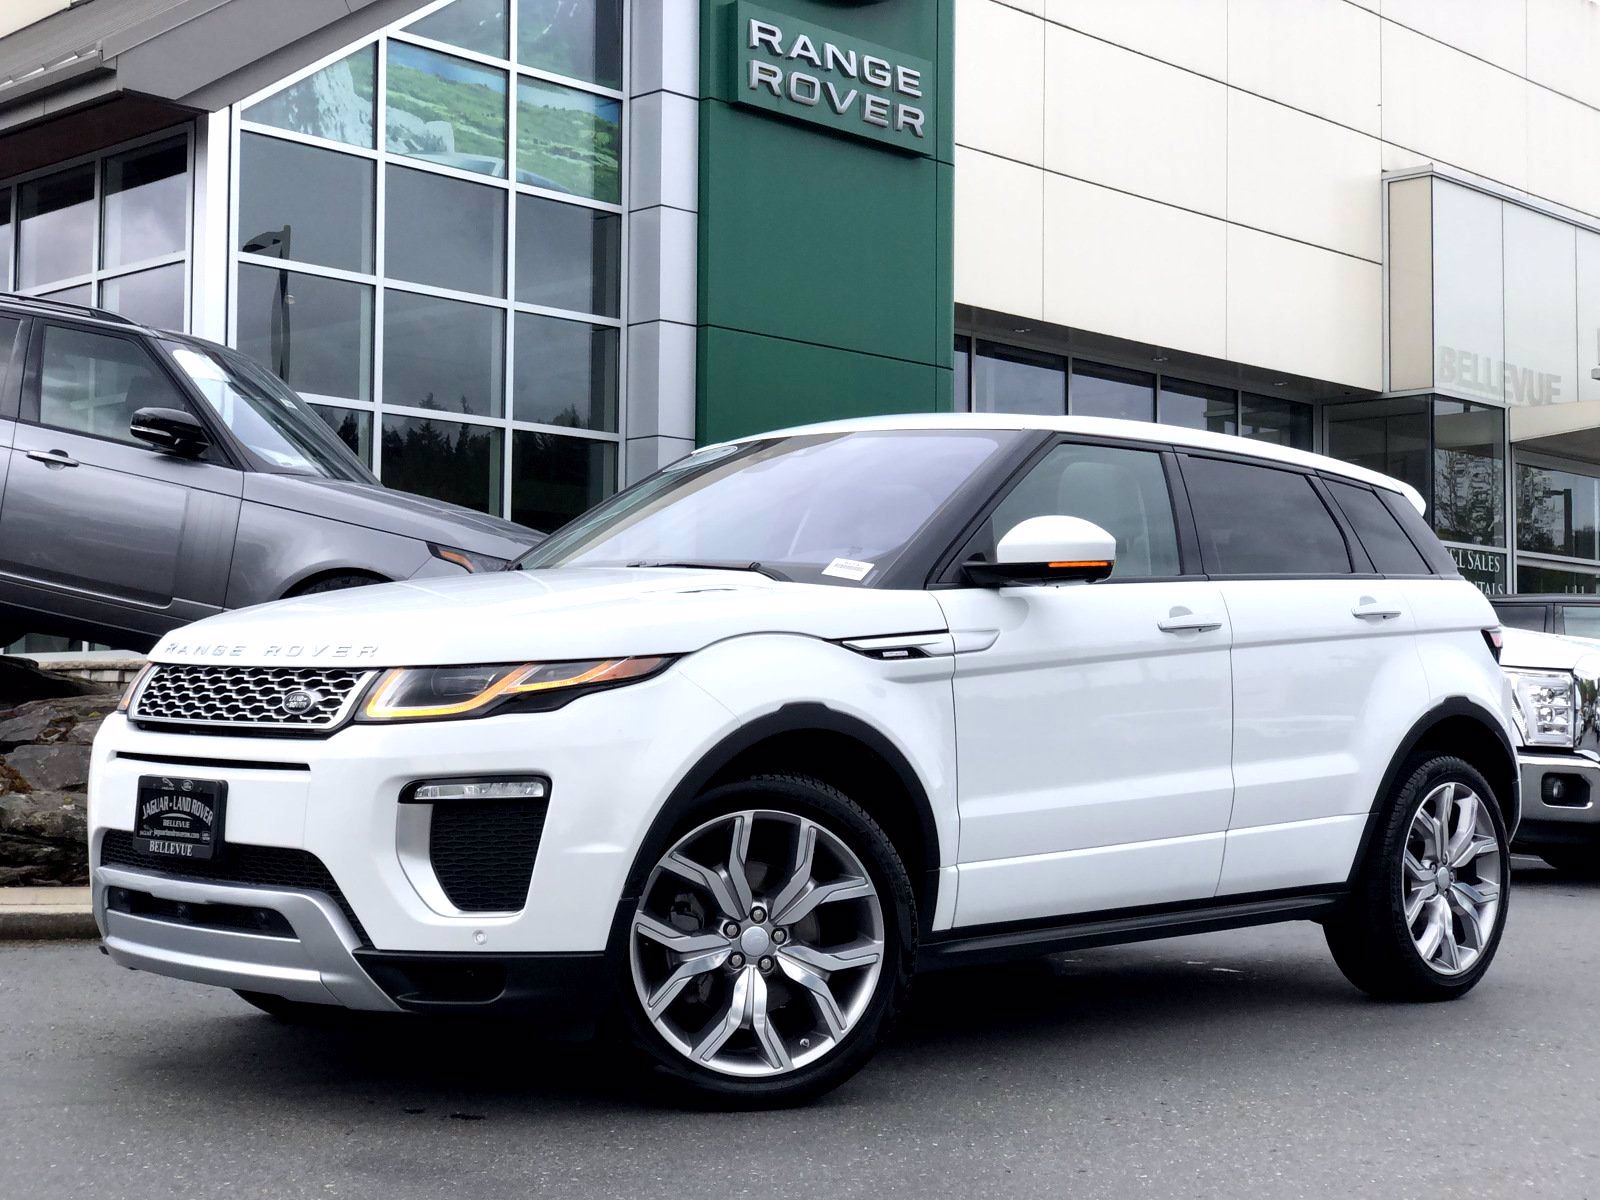 Pre-Owned 2017 Land Rover Range Rover Evoque Autobiography